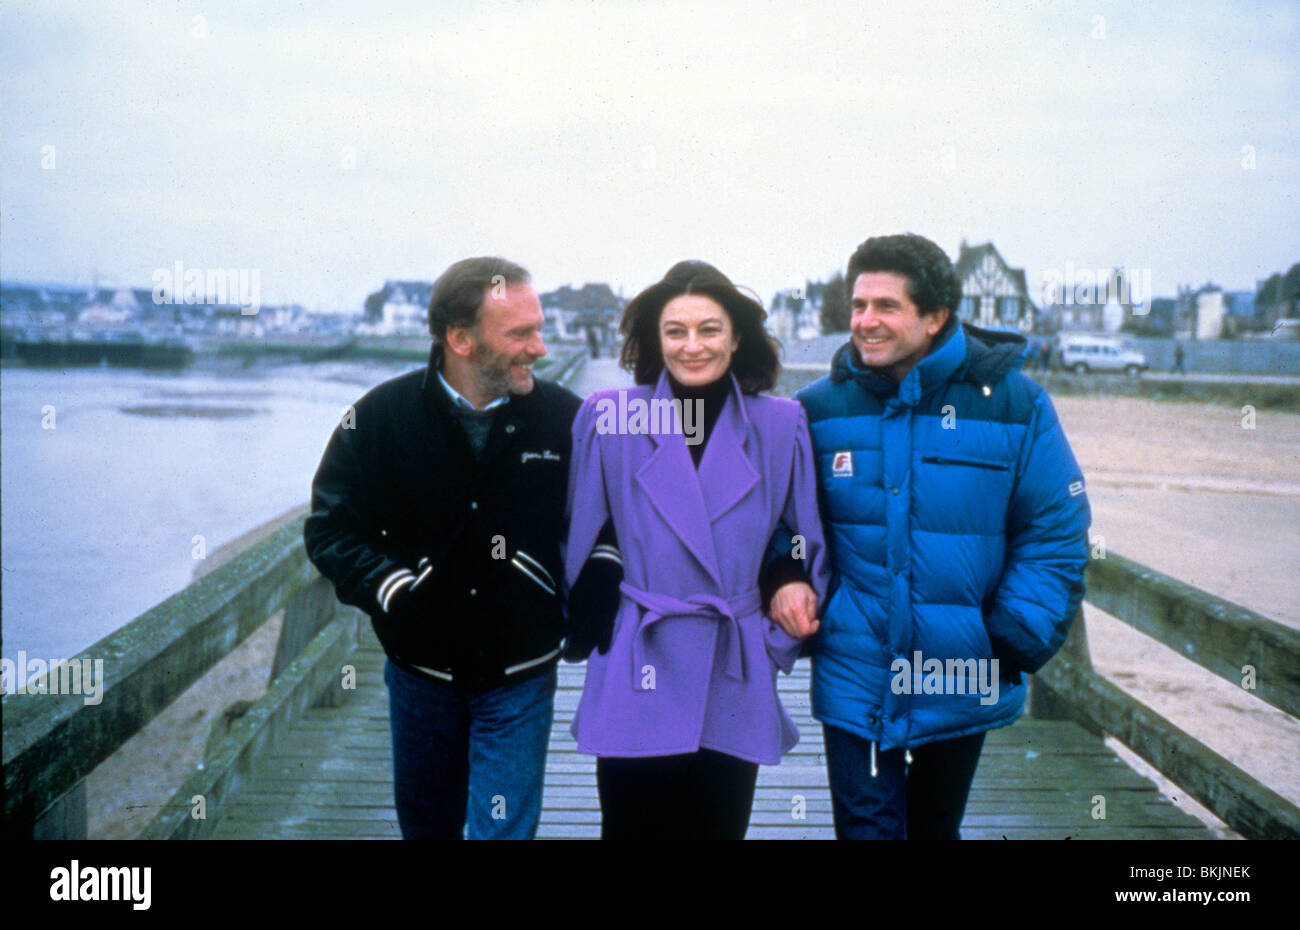 CLAUDE LELOCH (DIR) O/S 'A MAN AND A WOMAN: 20 YEARS LATER' (1986) WITH JEAN-LOUIS TRINTIGNANT, ANOUK AIMEE - Stock Image